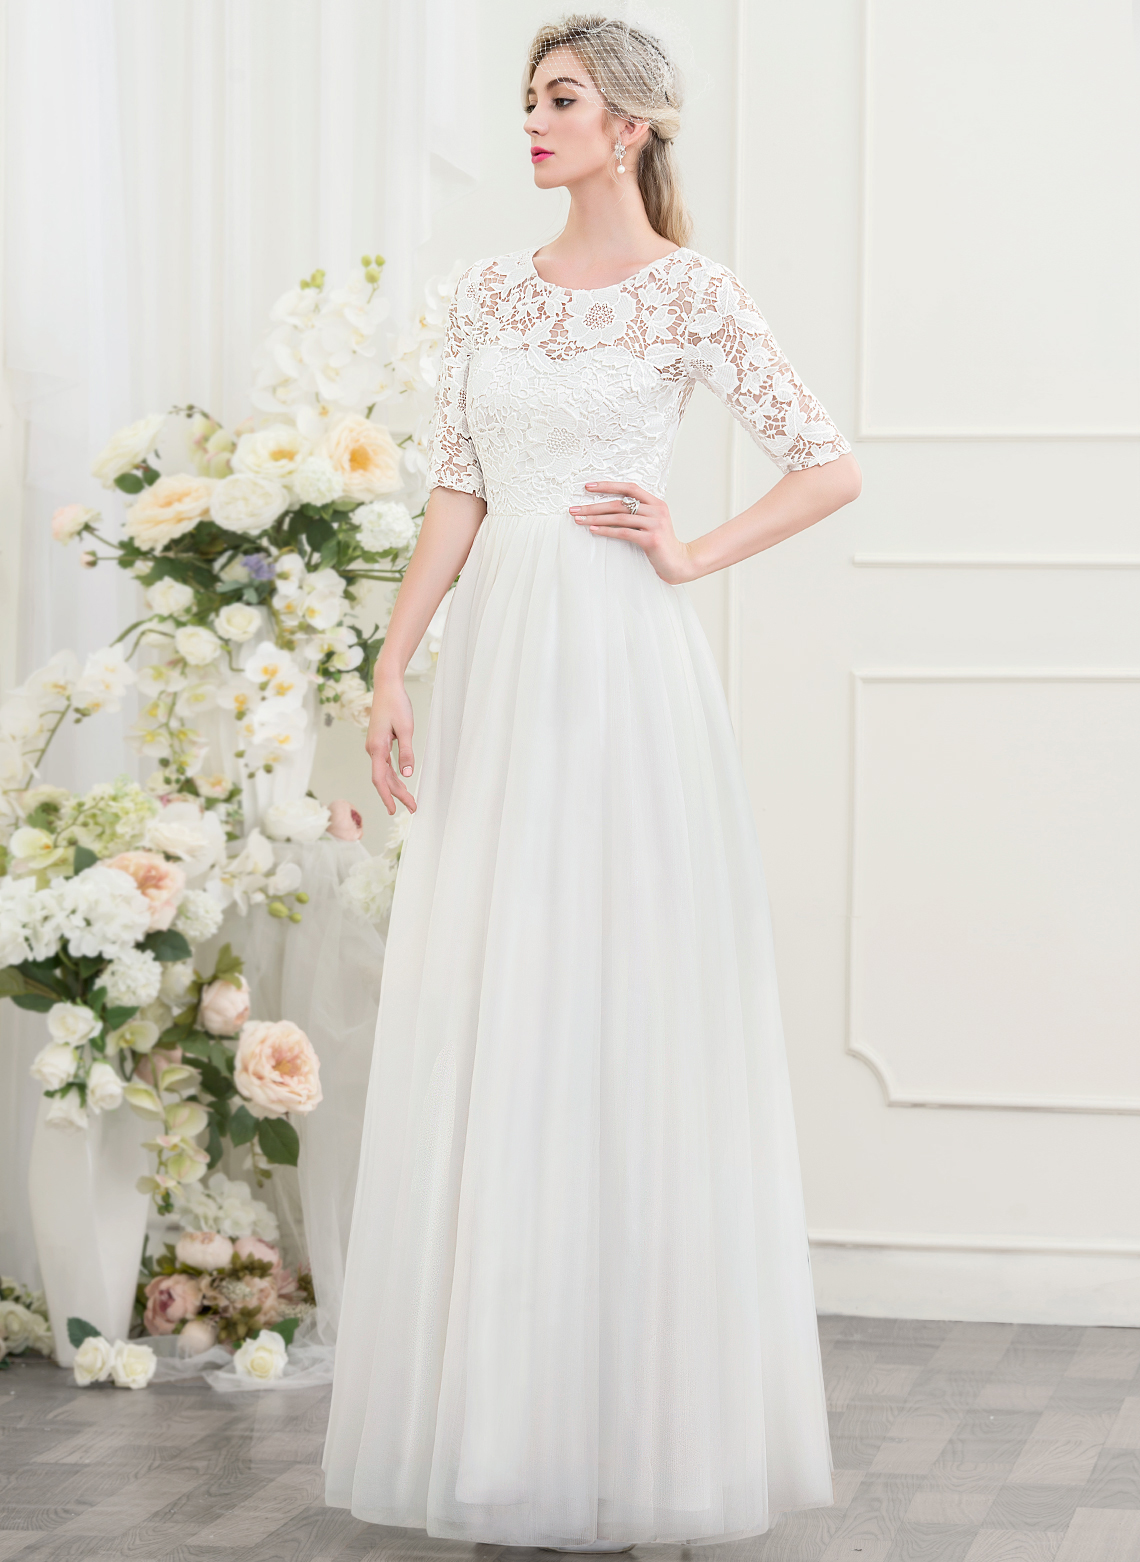 Like The Princess Name Implies Youll Feel Royalty In An A Line Wedding Dress Flowing Bottom And Narrow Top Create Shape That